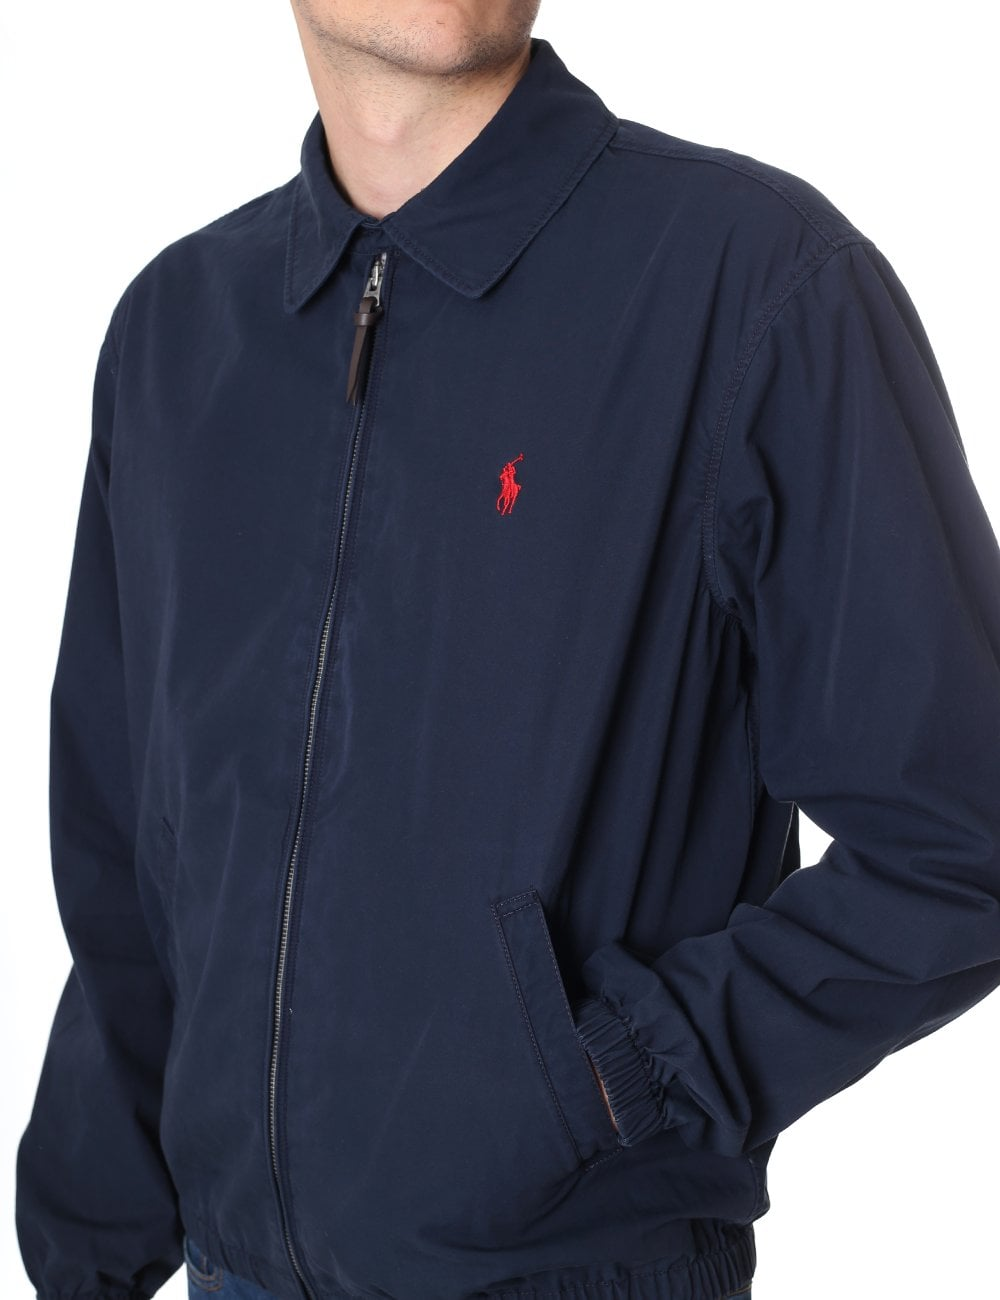 variety of designs and colors drop shipping color brilliancy Polo Ralph Lauren Bayport Men's Cotton Jacket